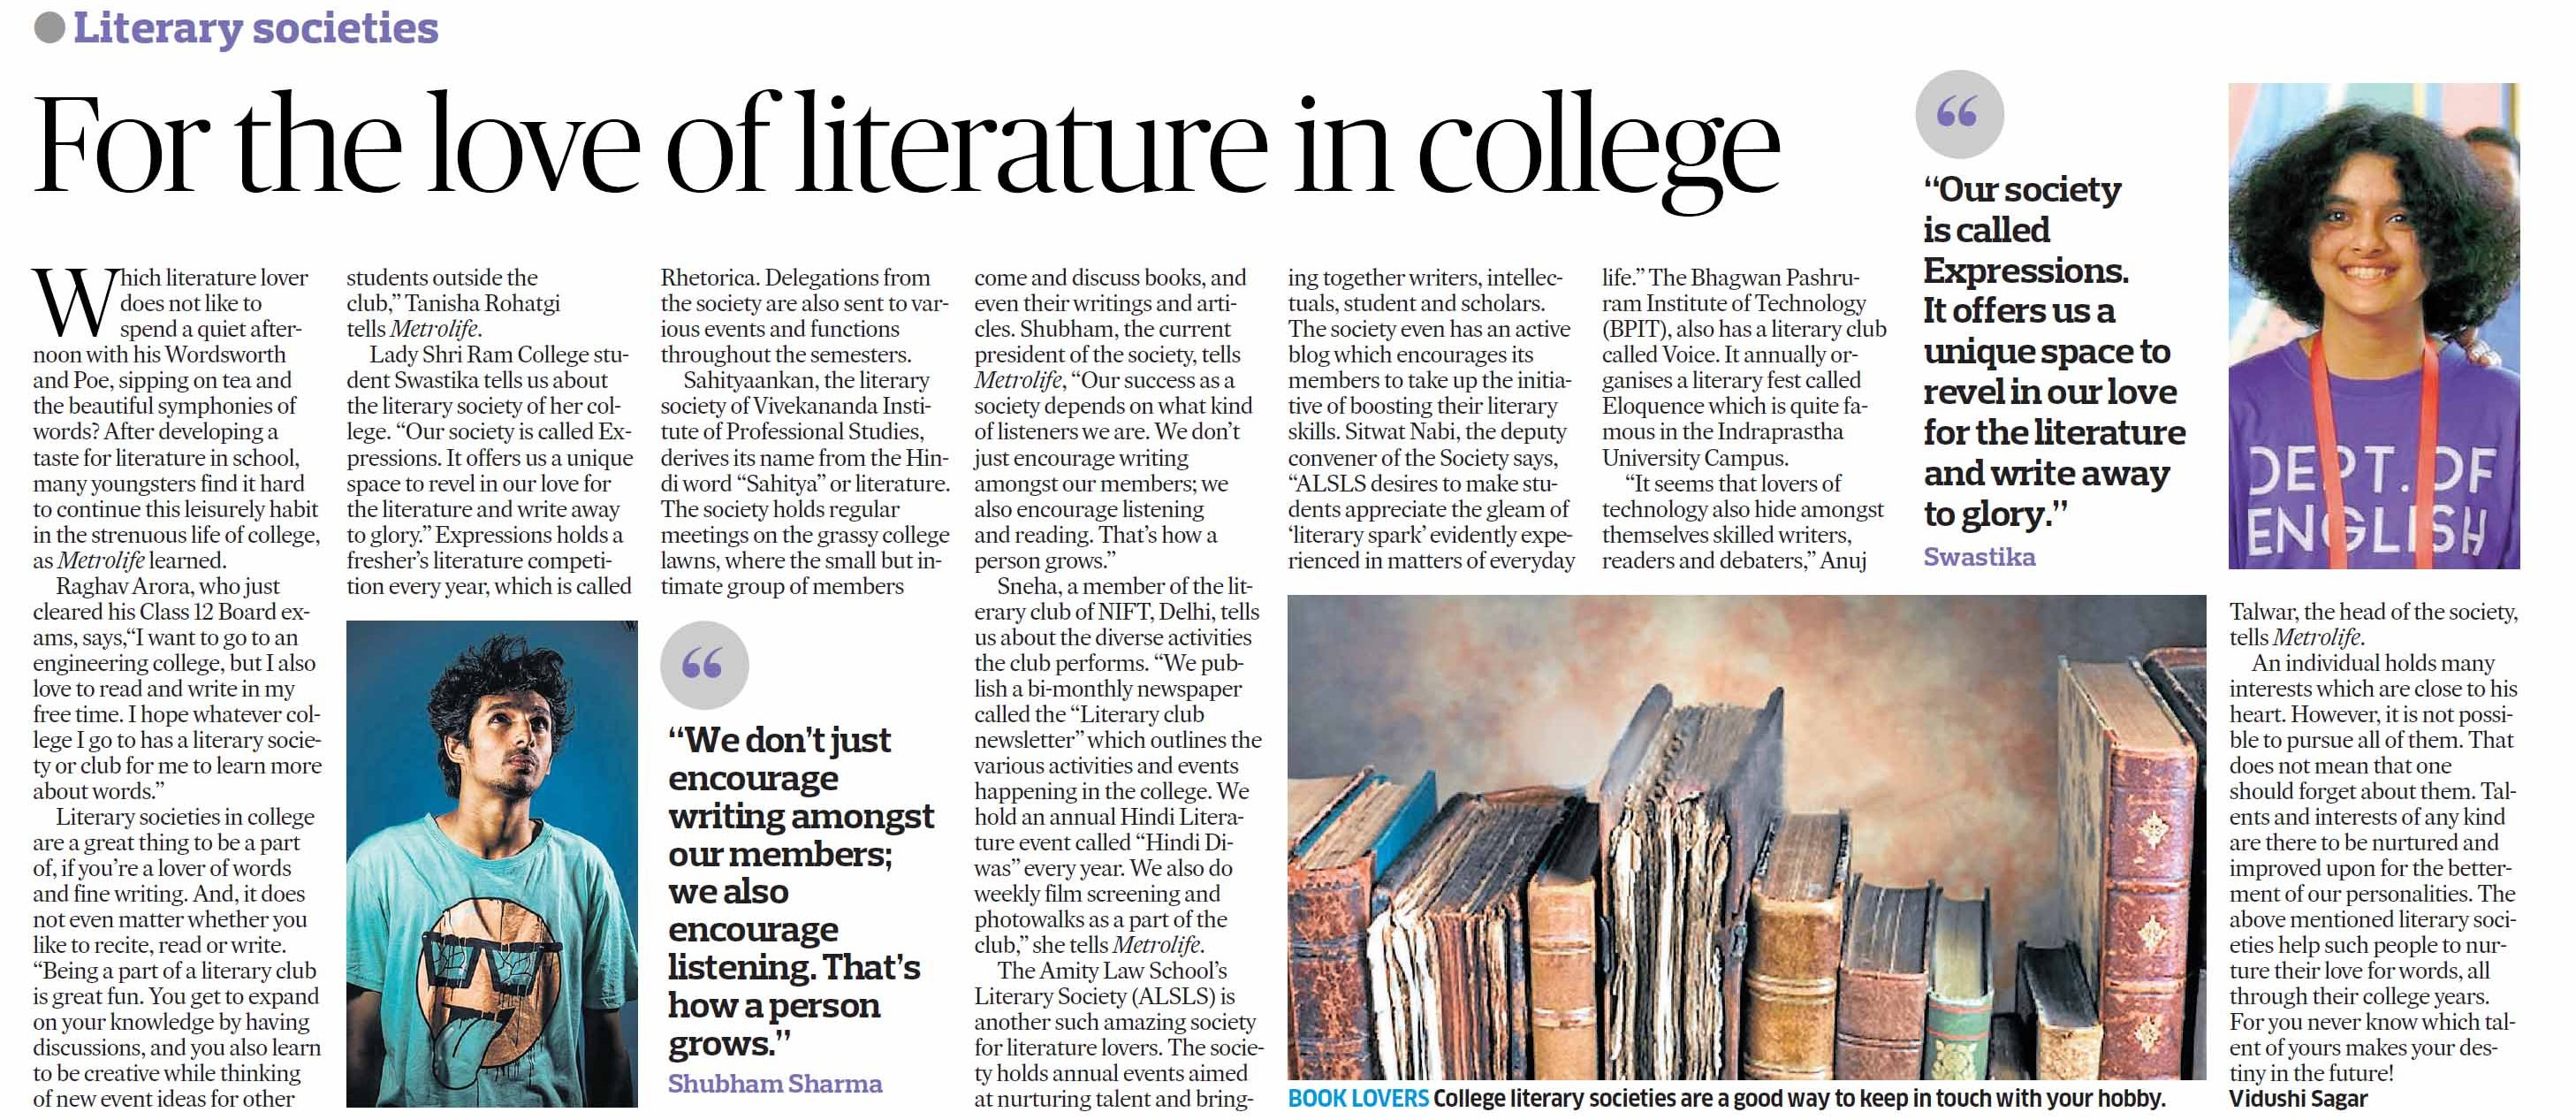 For the love of literature in college Mention of Amity Law School''s